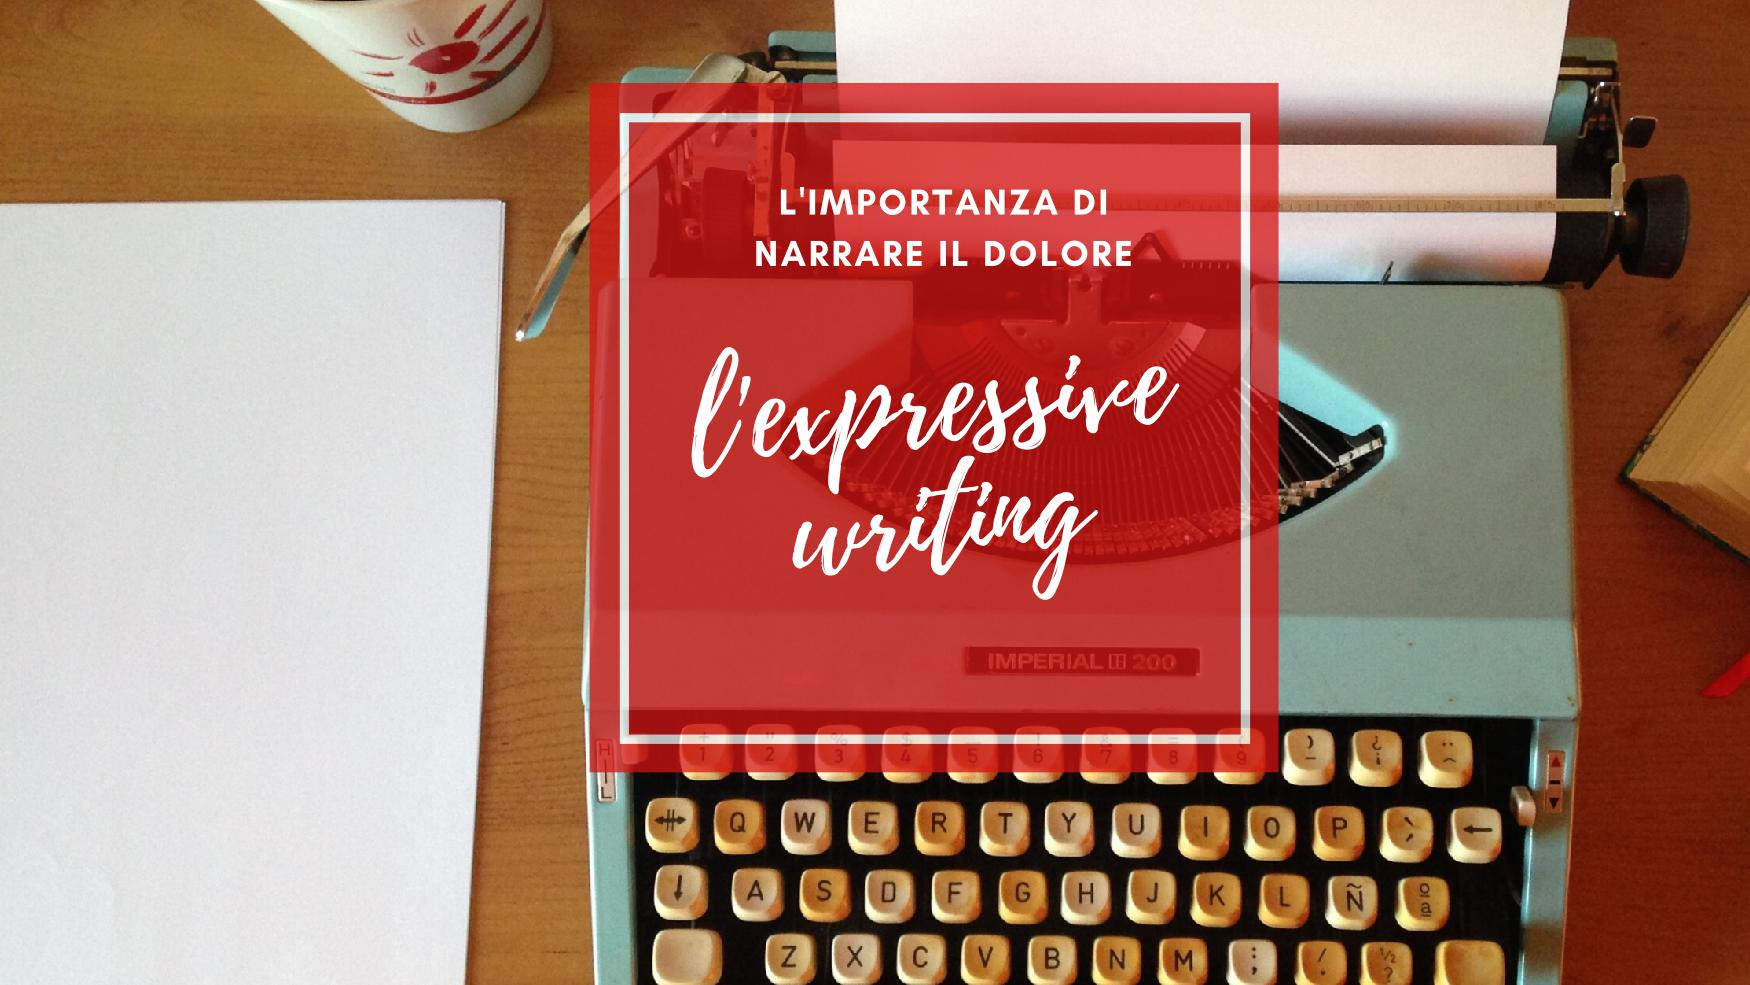 L'importanza di narrare il dolore: l'Expressive Writing